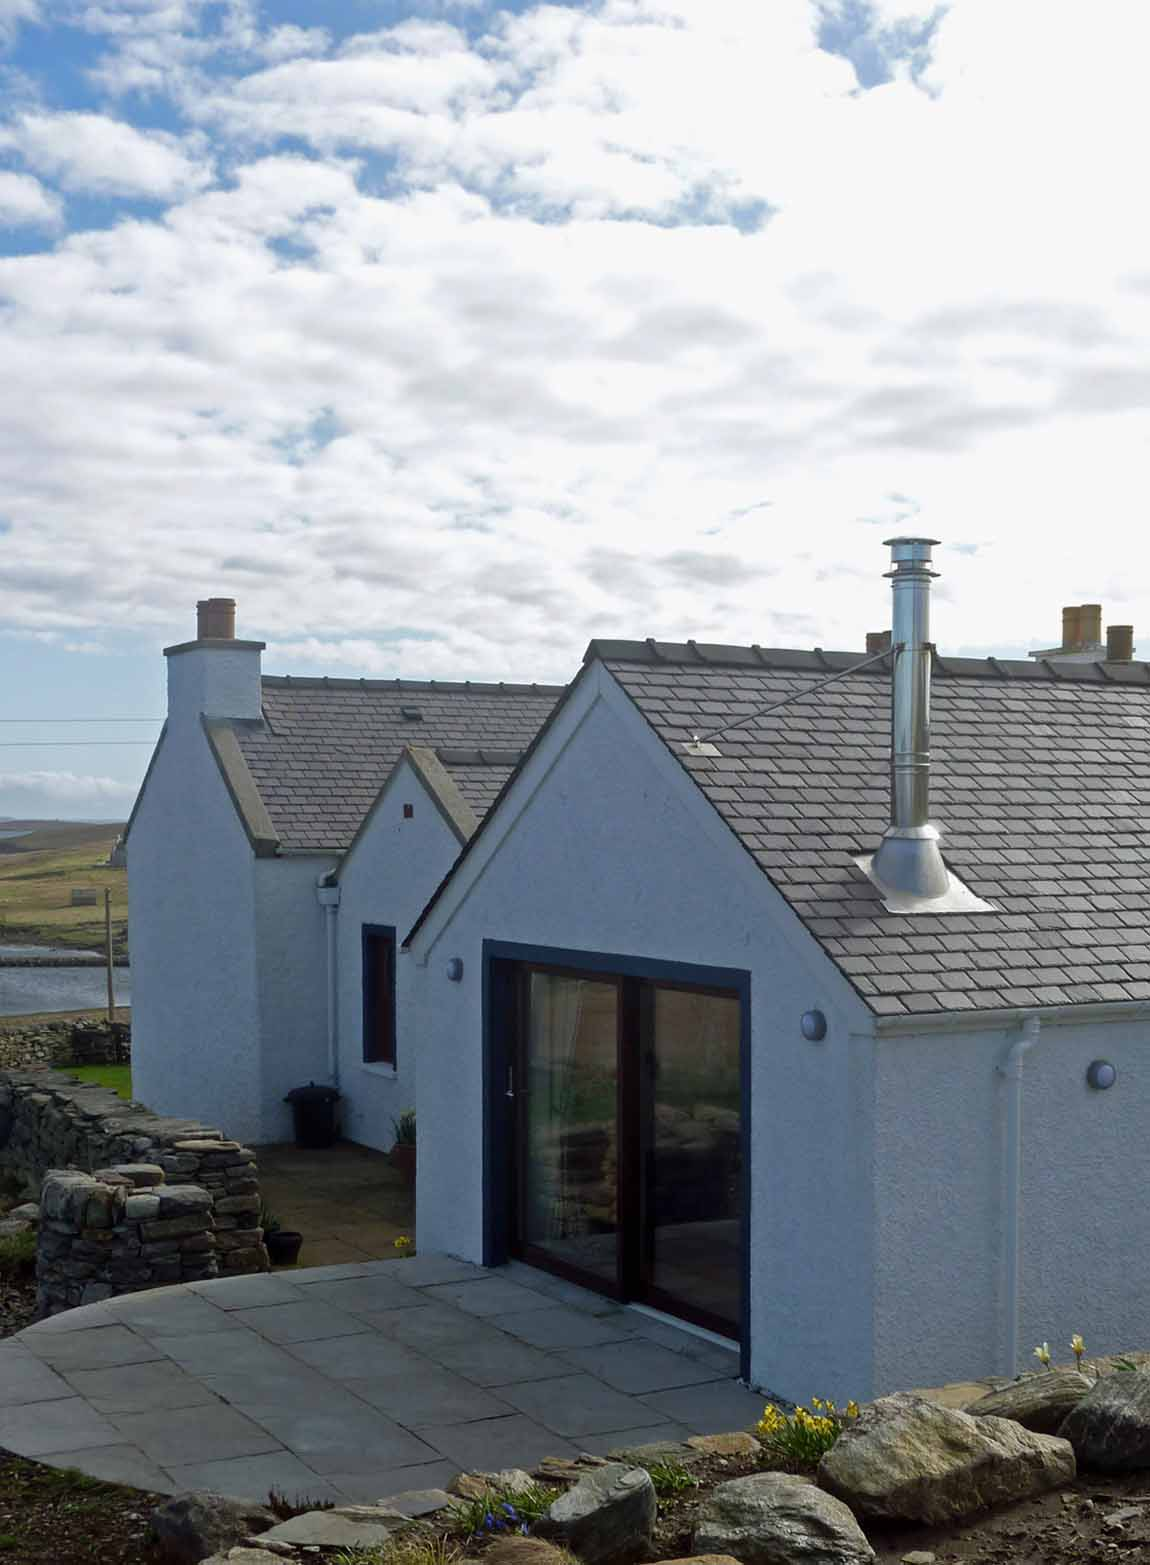 New Life for Old Buildings, Redman + Sutherland Architects New House, Cullivoe, Yell, Shetland, exterior 2